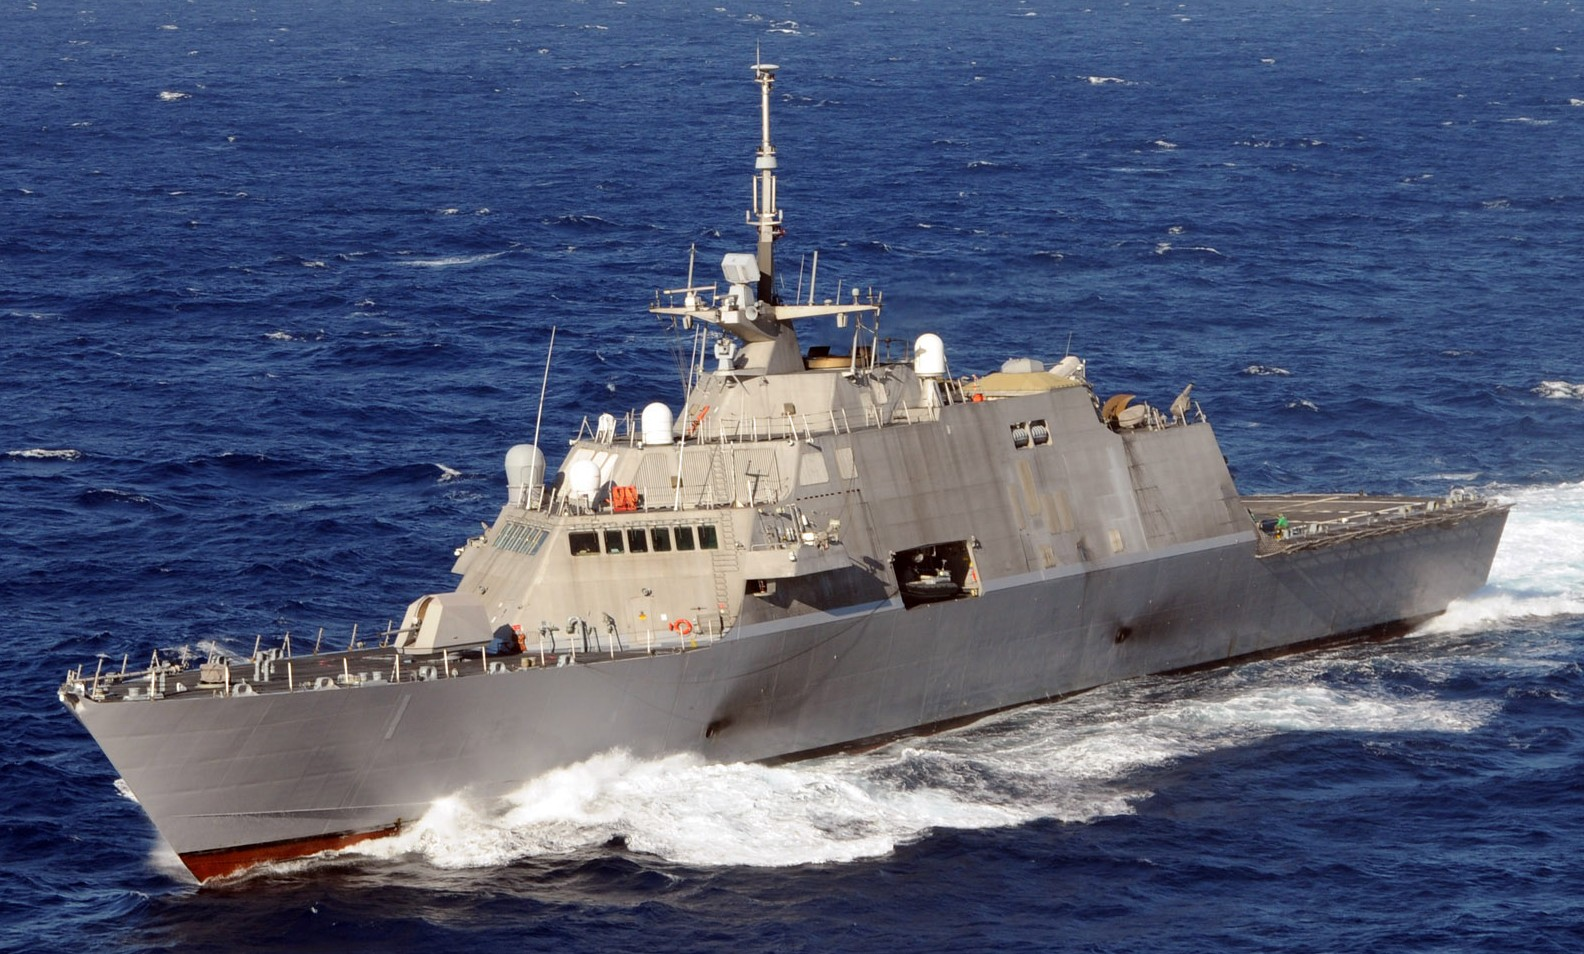 Uss freedom lcs 1 class littoral combat ship us navy - Uss freedom lcs 1 photos ...